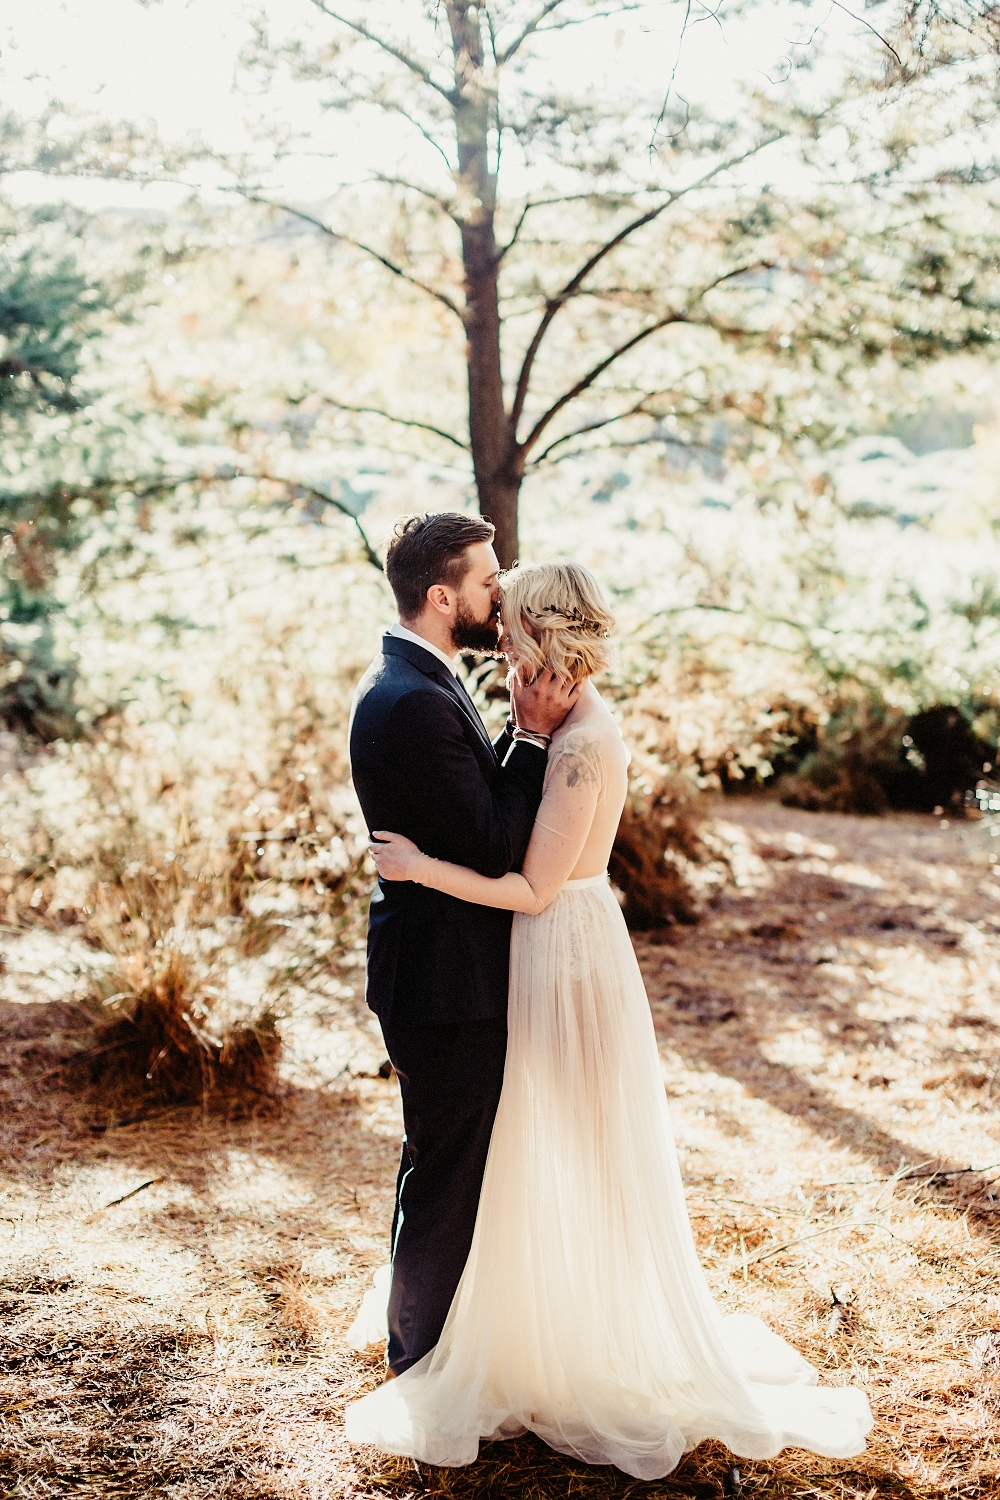 Squarespace_Wedding_Folio-LR-045AE.jpg